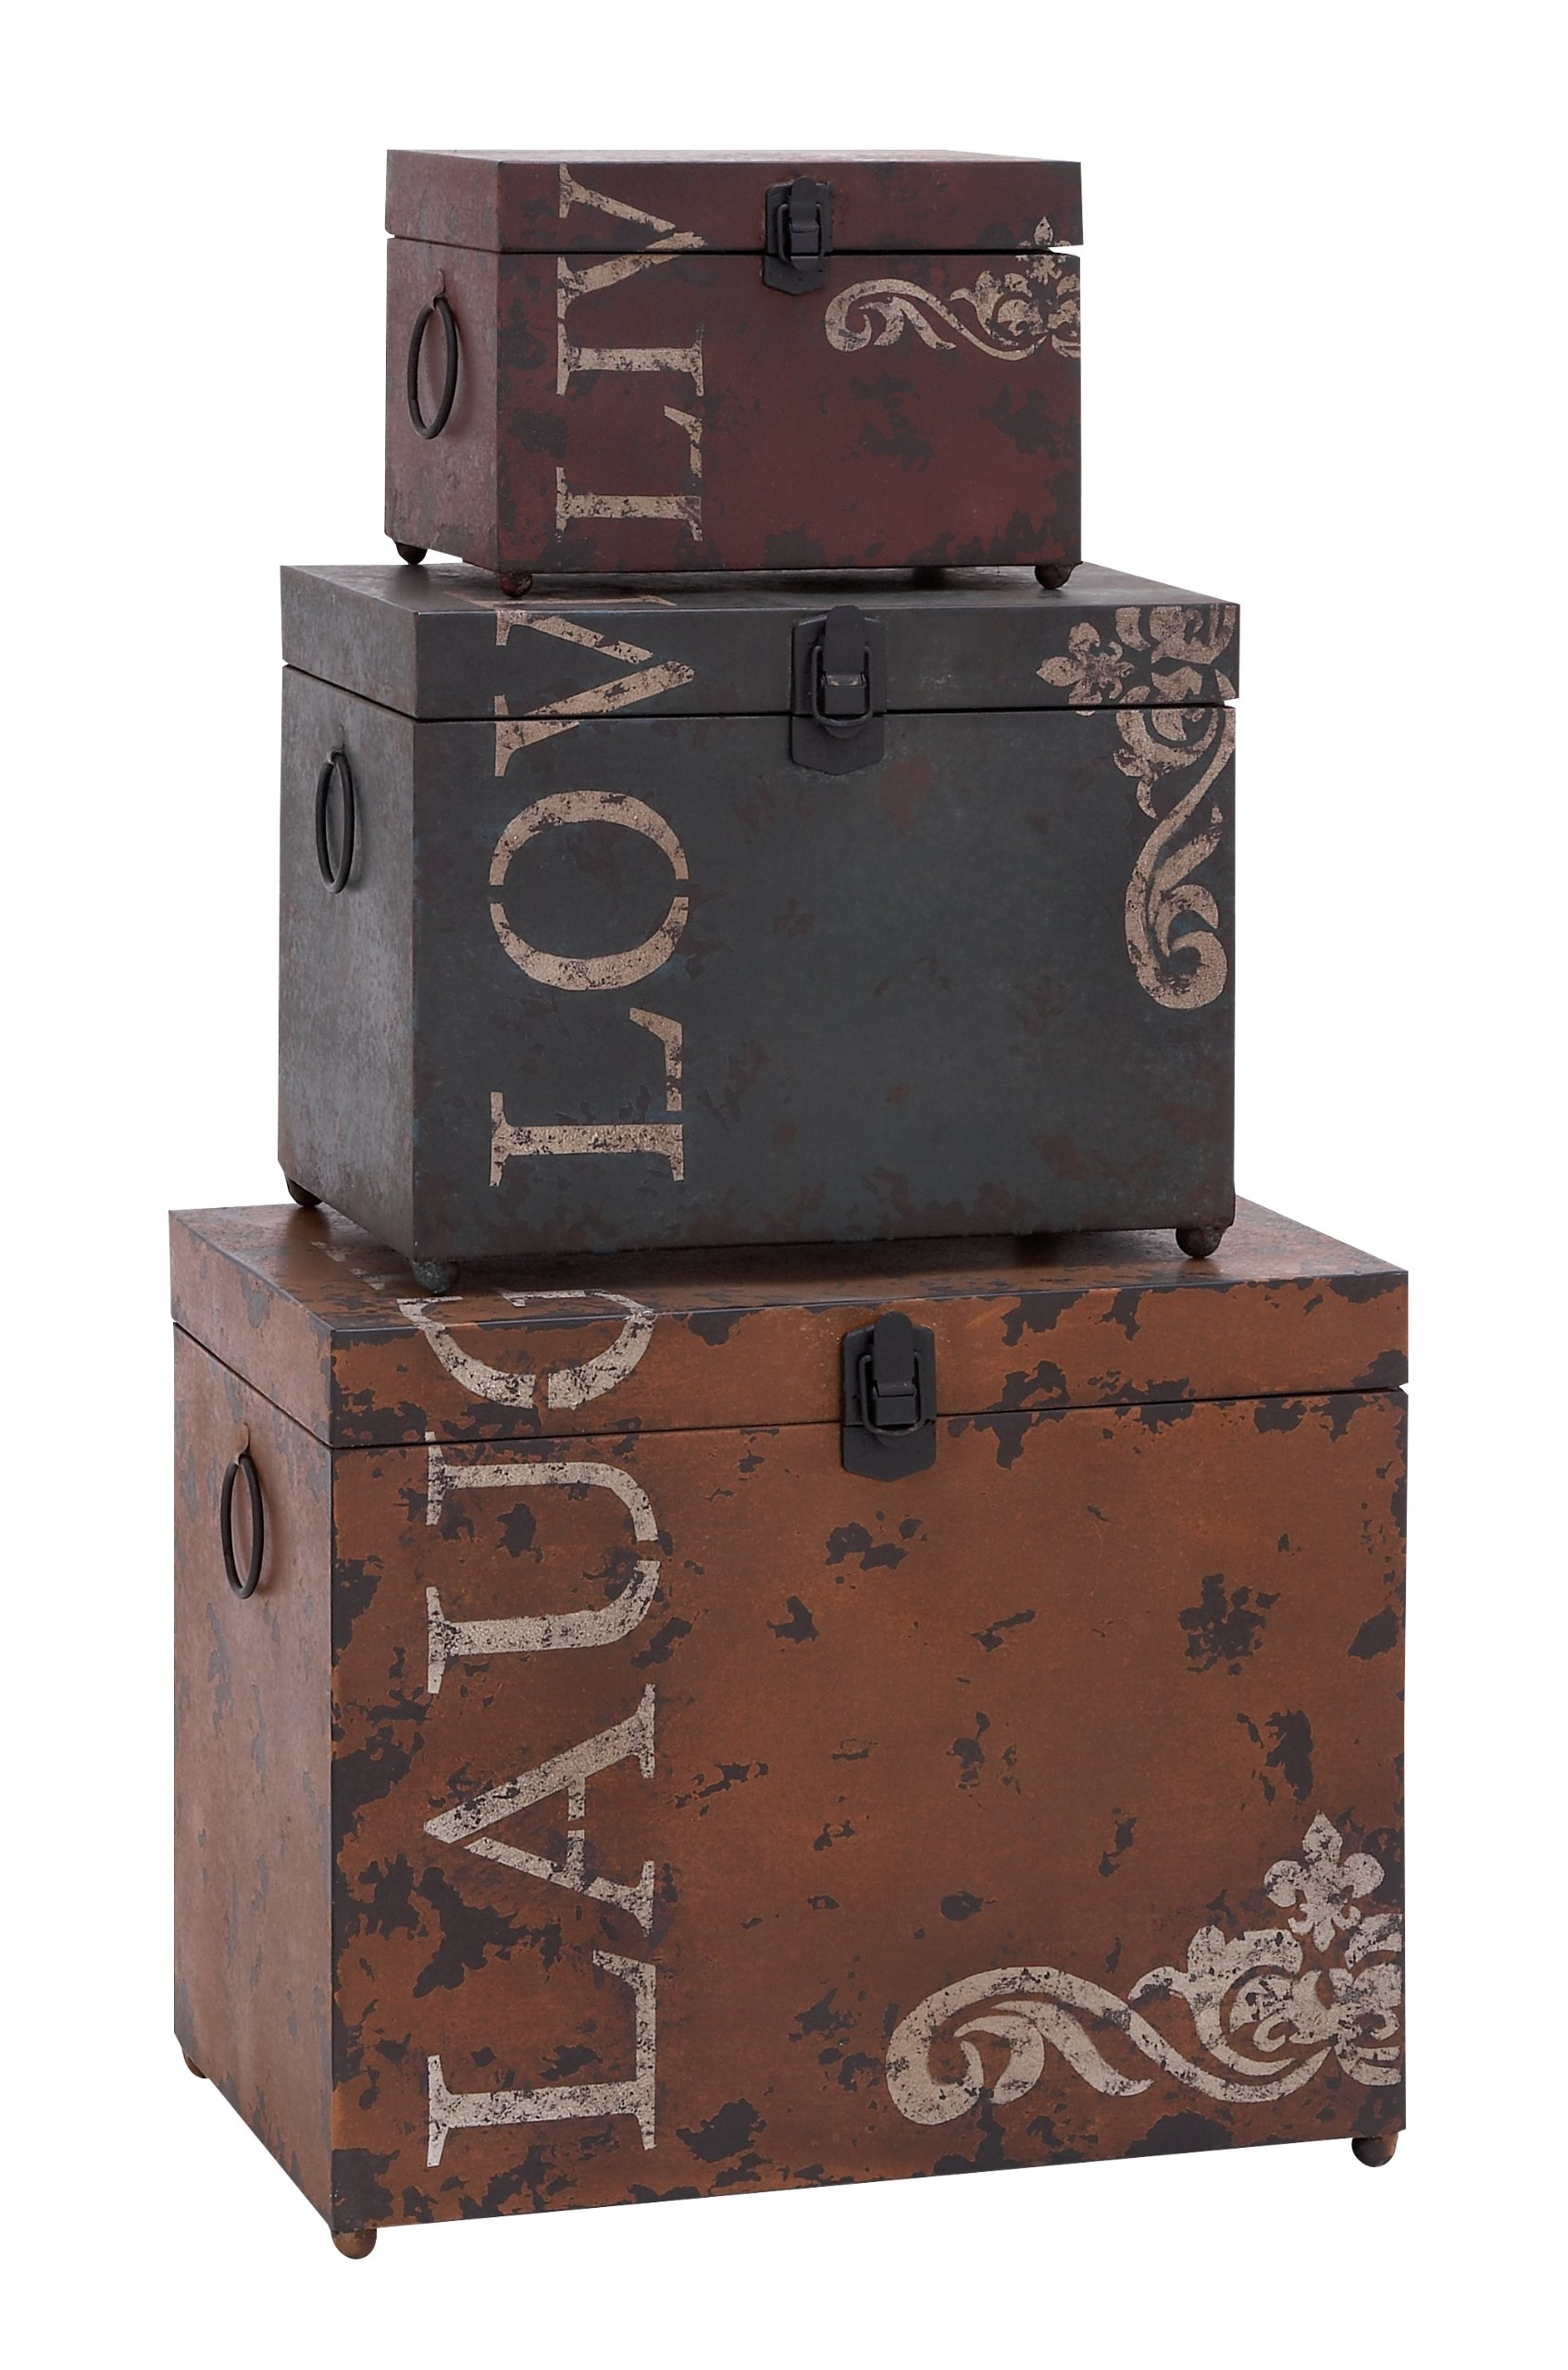 Deco 79 53854 Metal Trunks (Set of 3), 16''/12''/9'' by Deco 79 (Image #1)